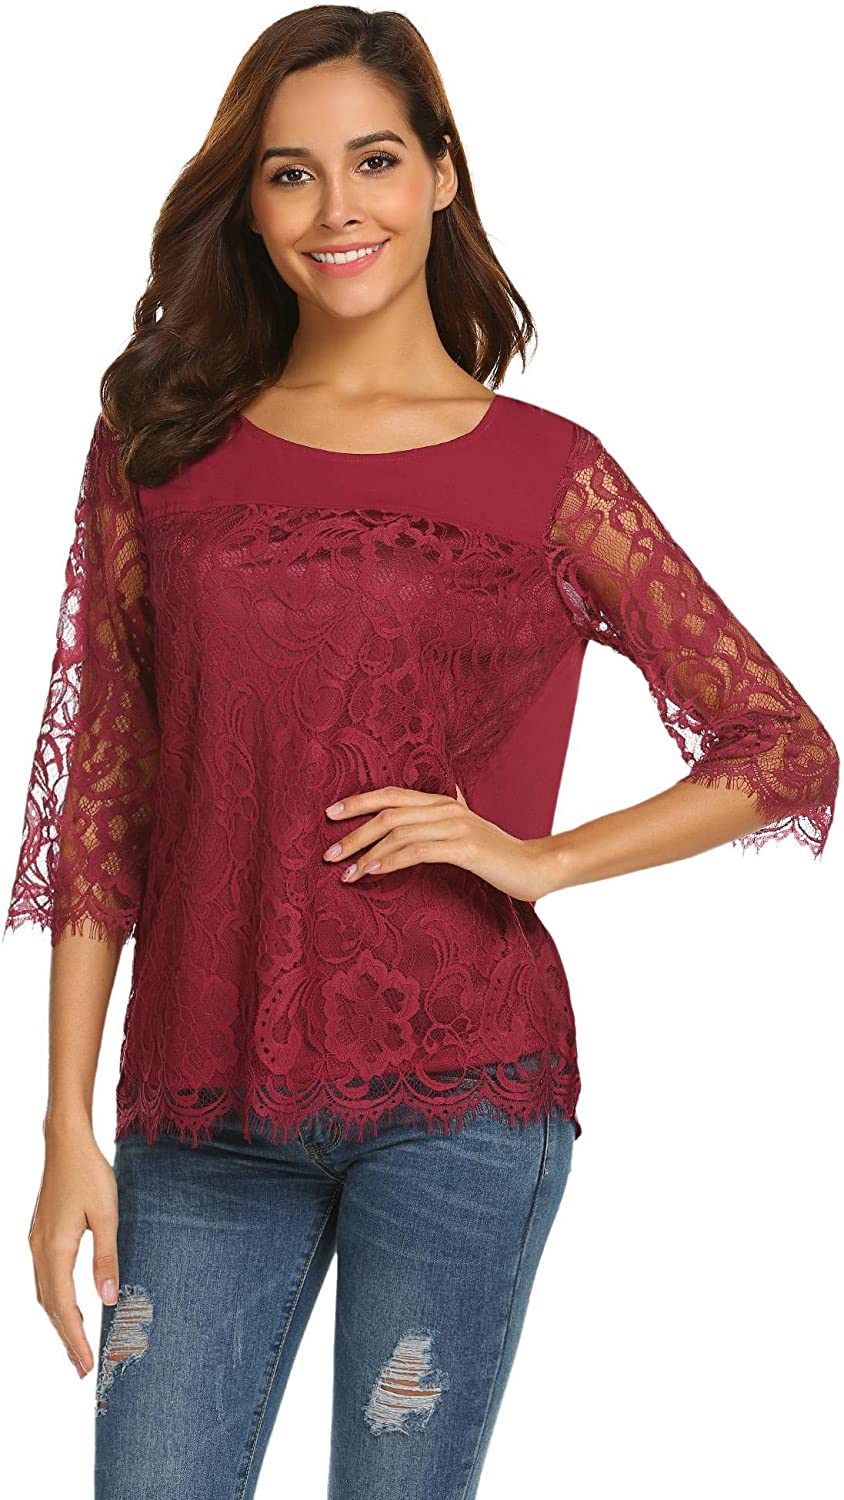 Gfones Women Casual Floral Lace Shirt Round Neck 3 4 Sleeve Blouse Tops